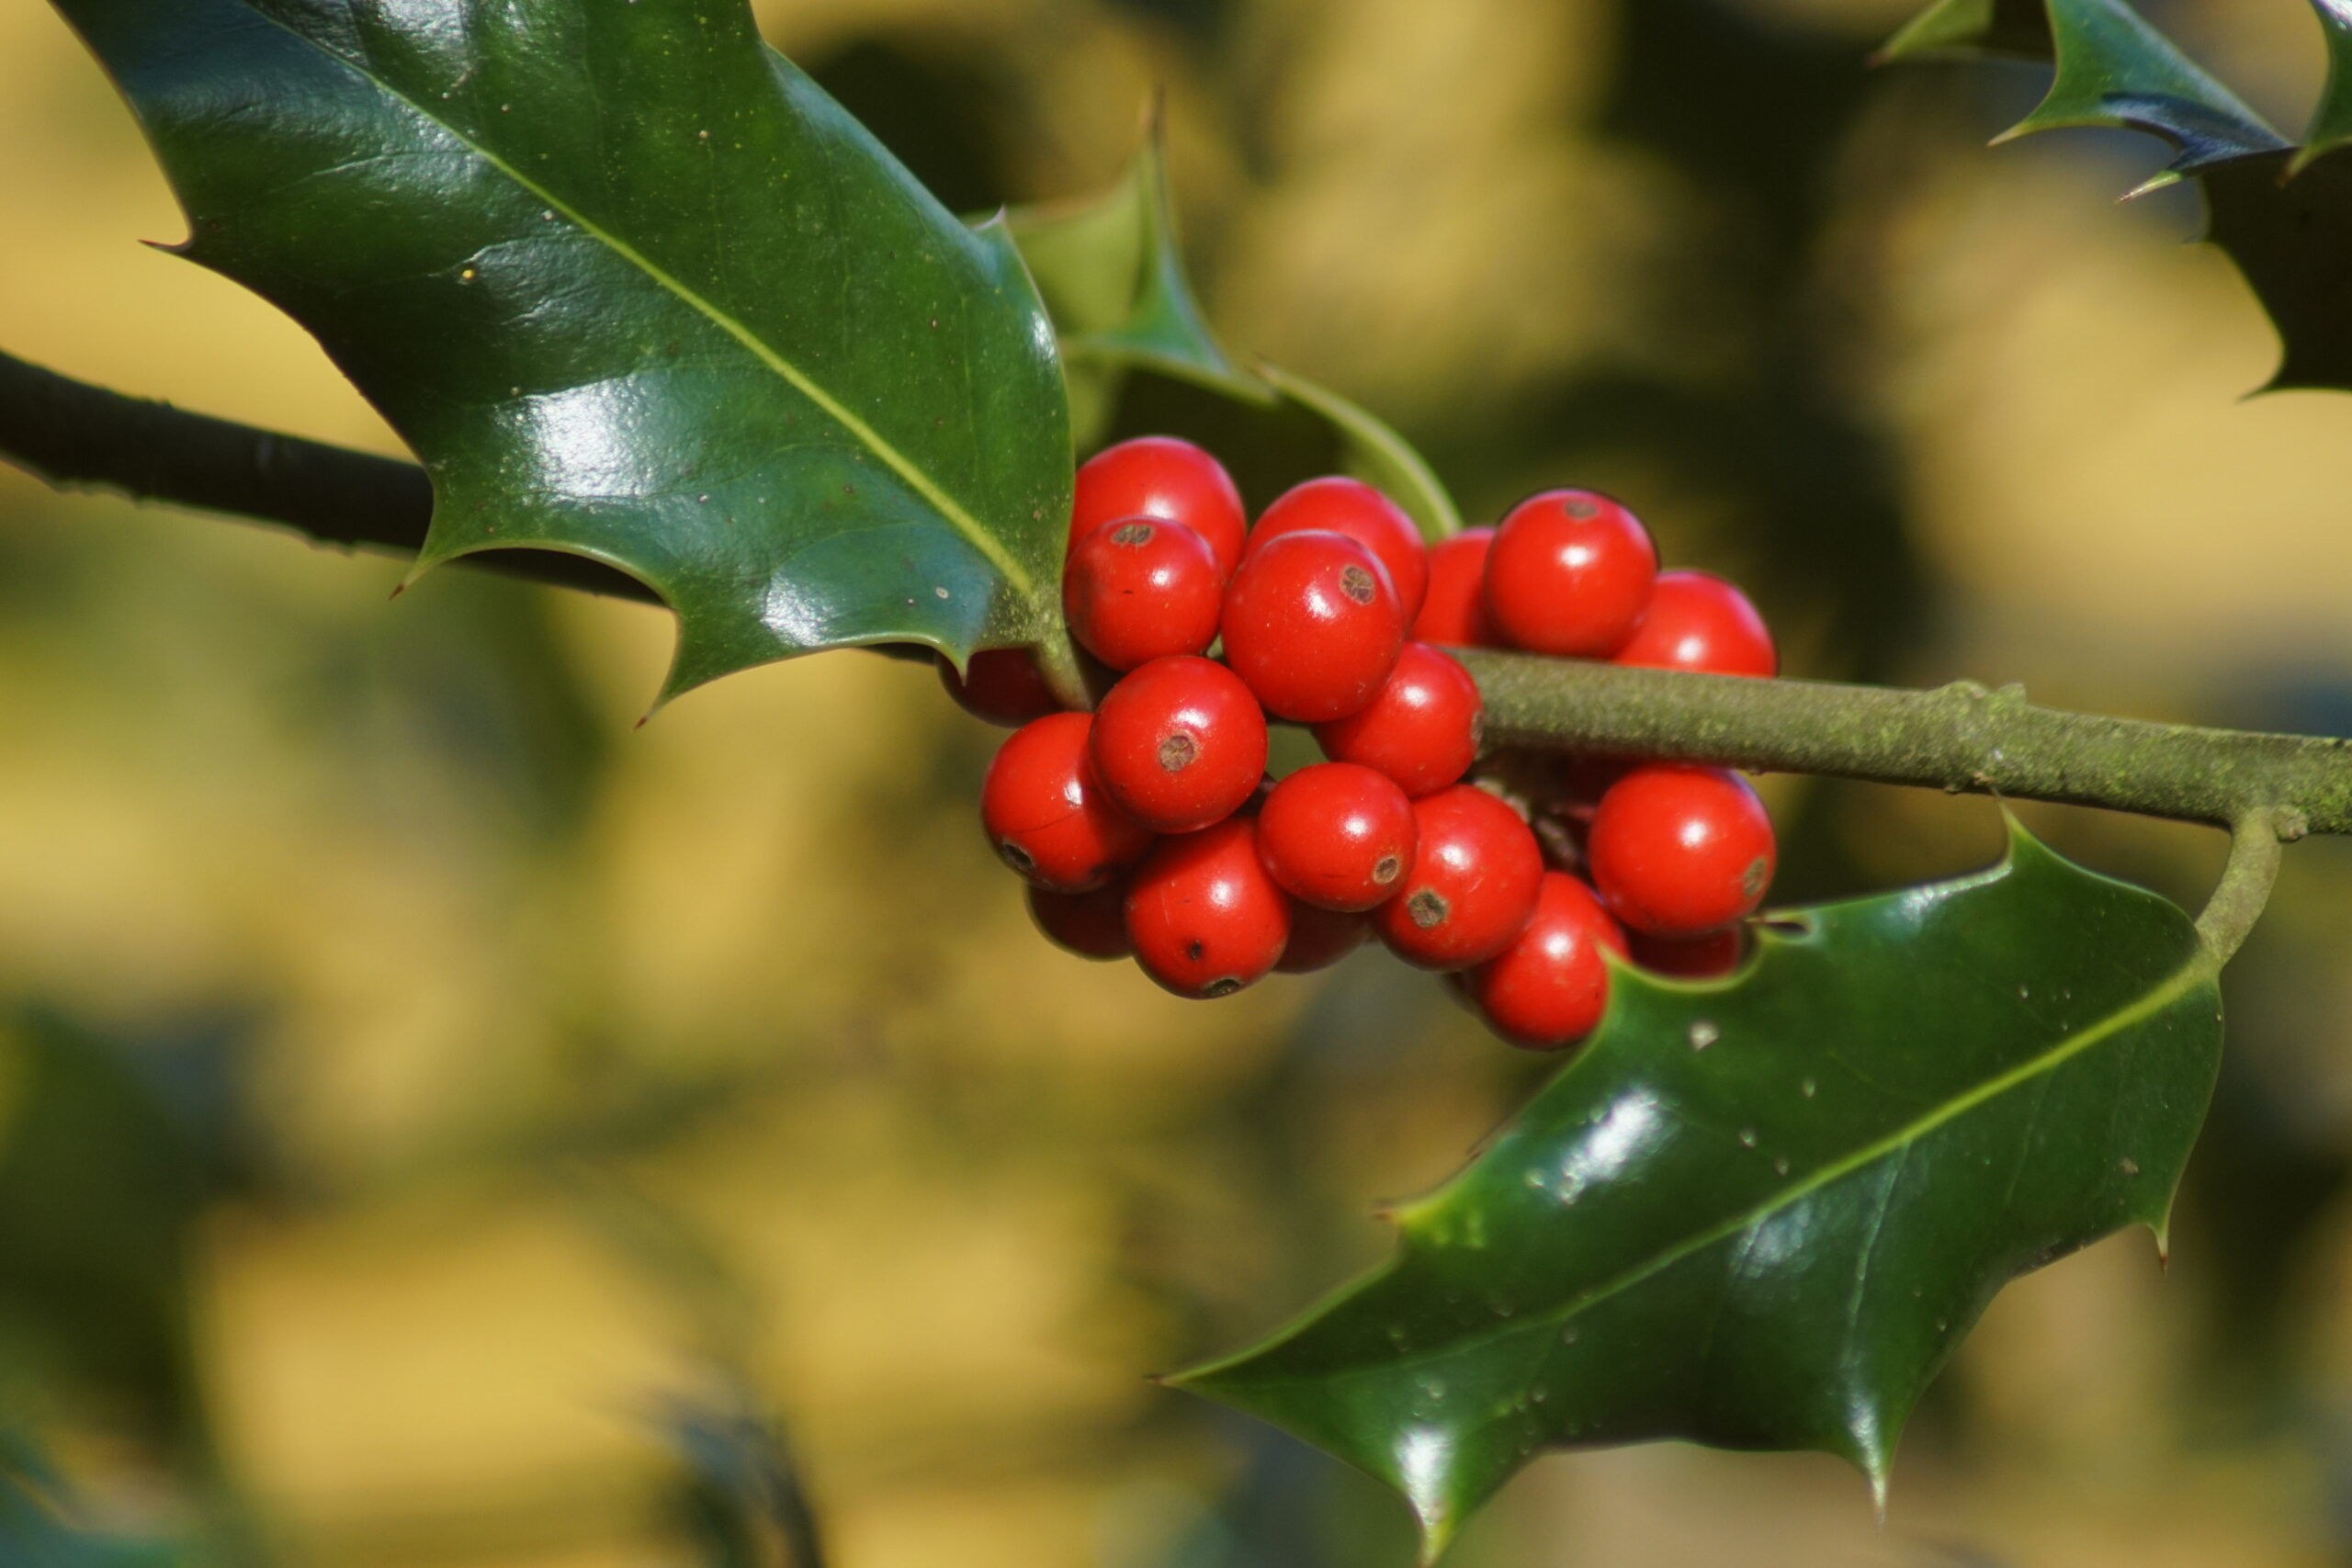 Berries on the holly